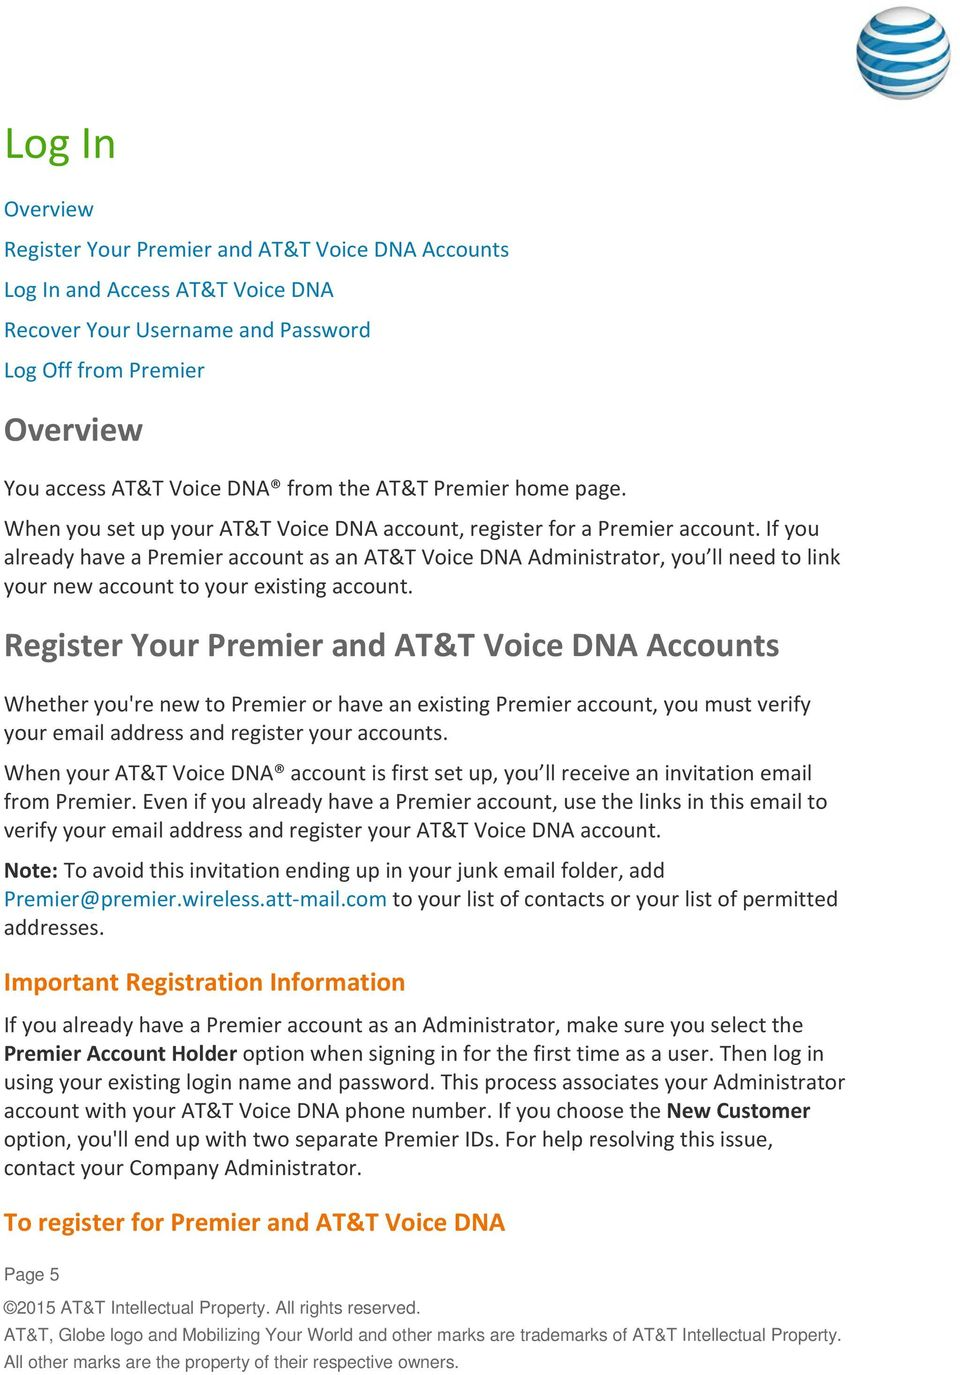 If you already have a Premier account as an AT&T Voice DNA Administrator, you ll need to link your new account to your existing account.